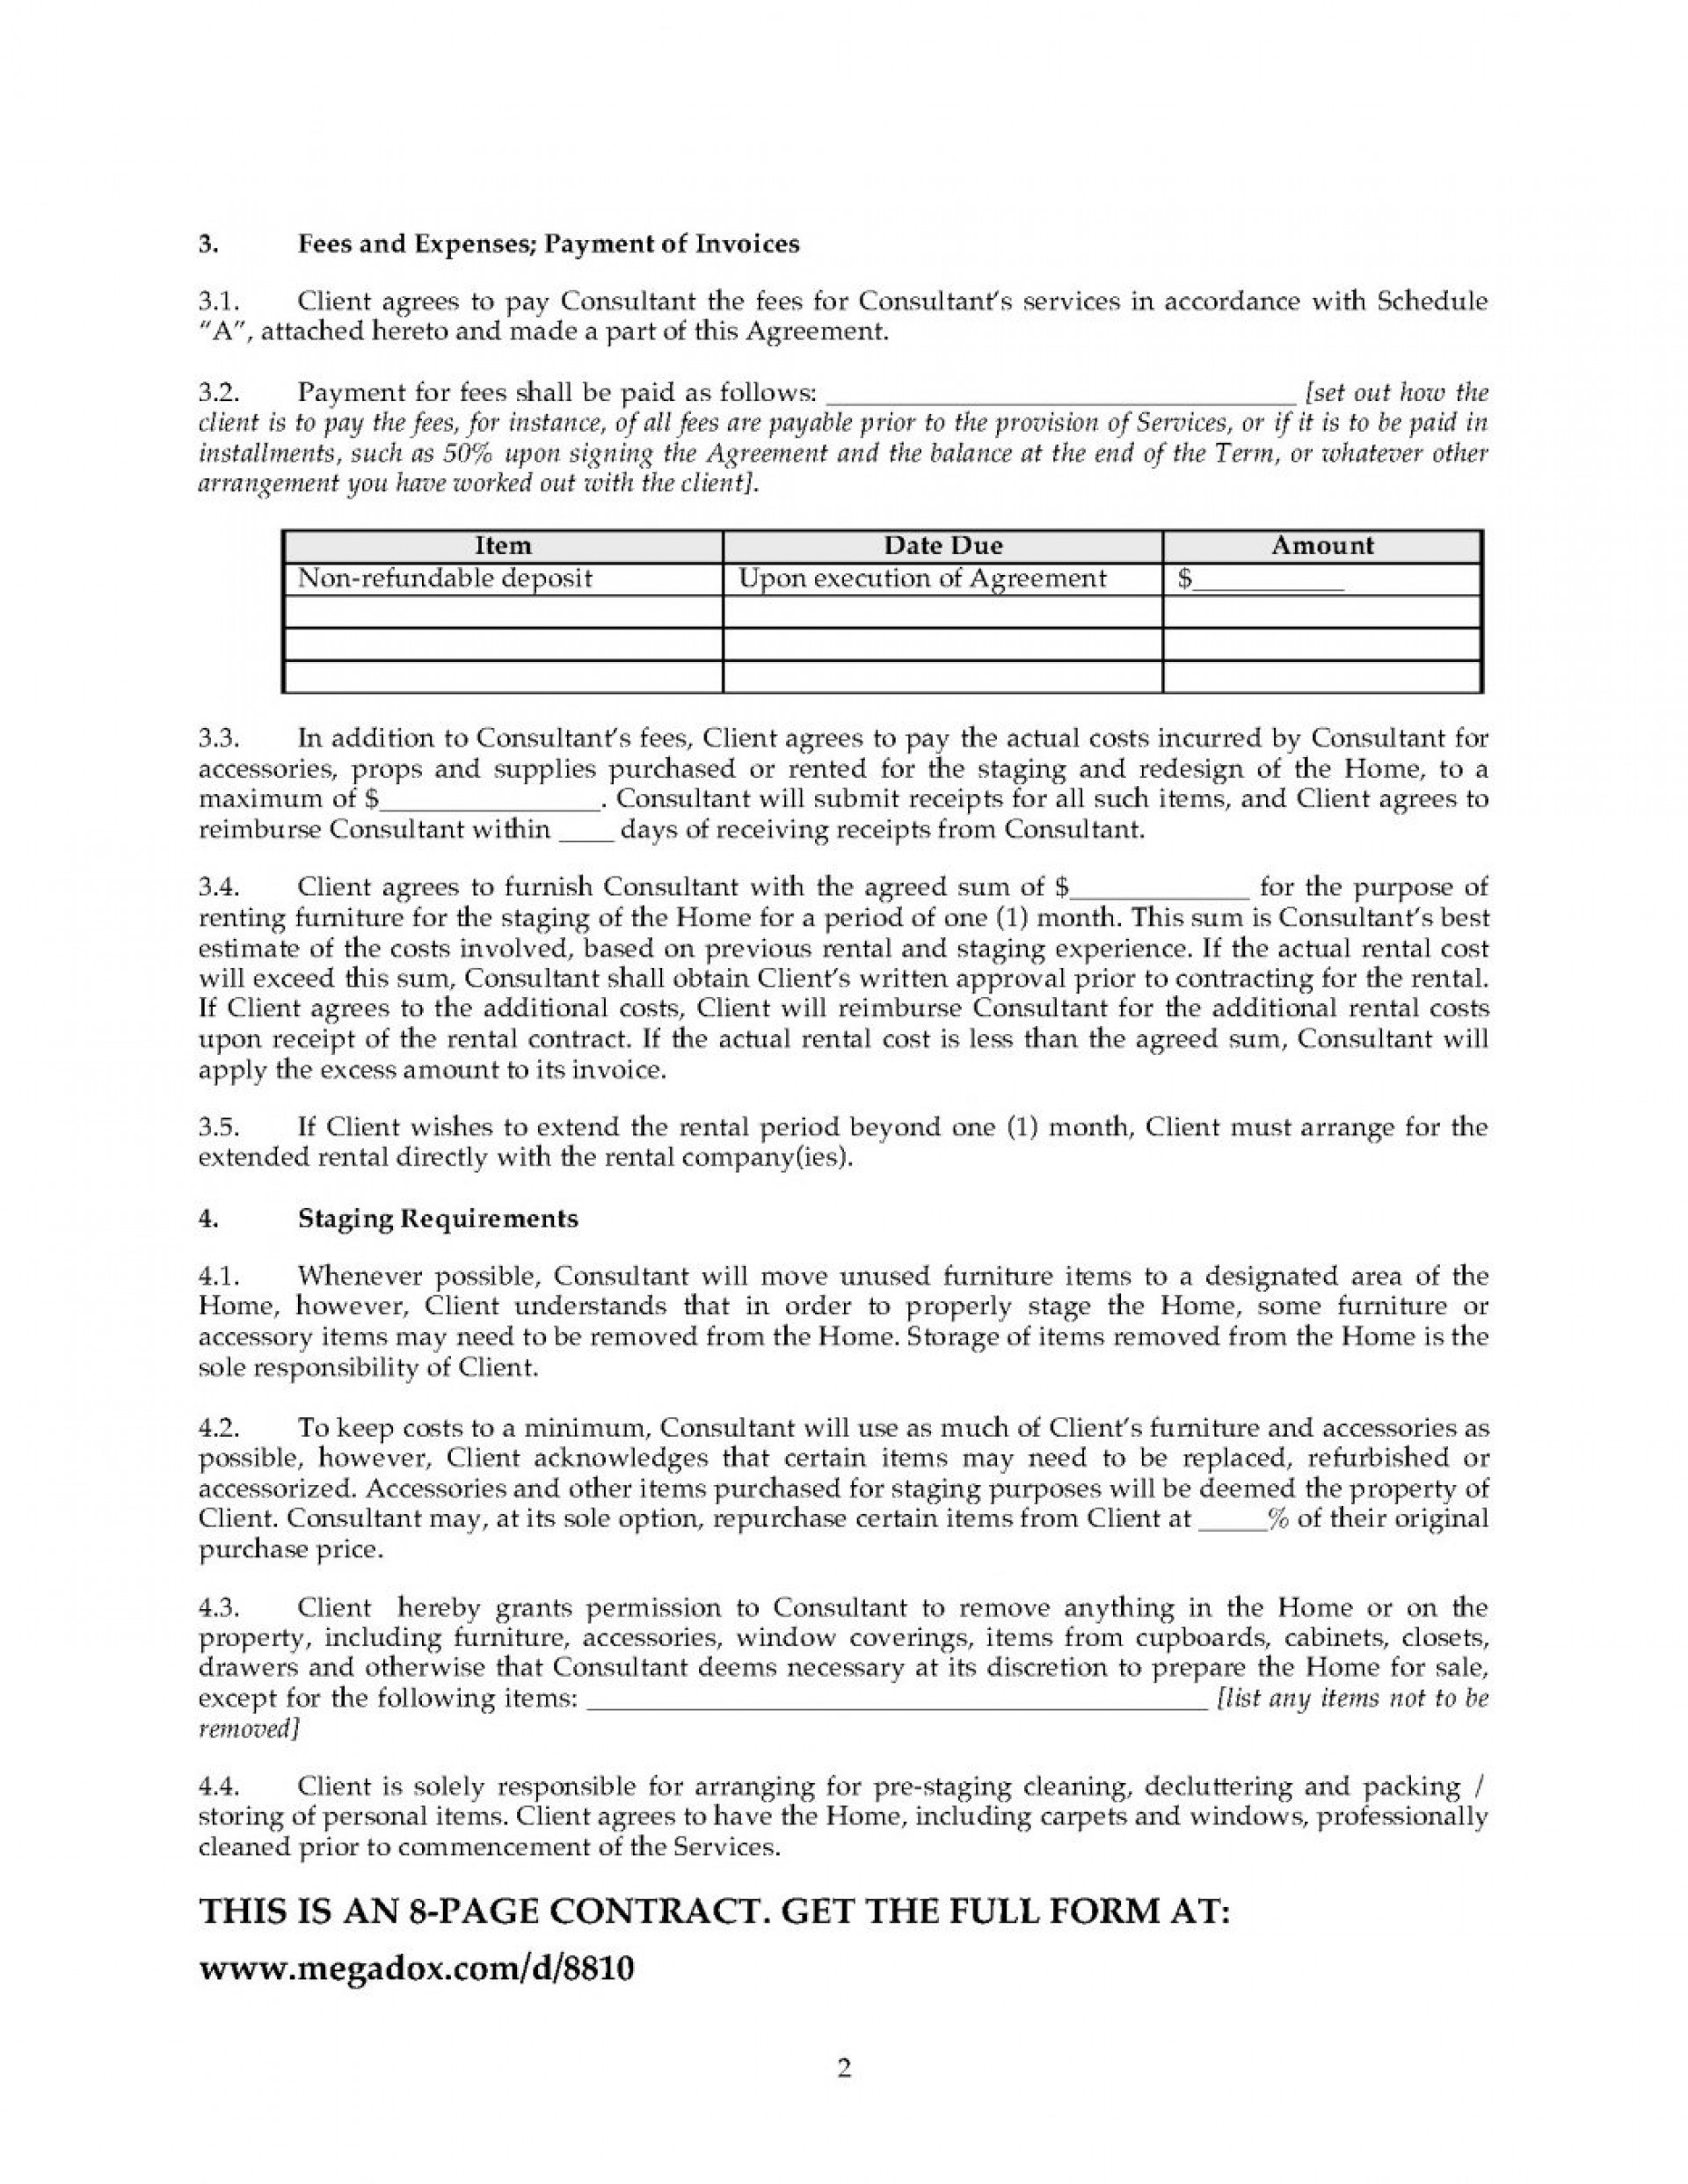 011 Example Ofpendix In Research Paper Buy Geometry Essay Ona Sample Furniture Purchase Invoice Template Home Staging Services Contract Legal Forms And Business R Format 1048x1356 Outstanding Appendices Apa 1920